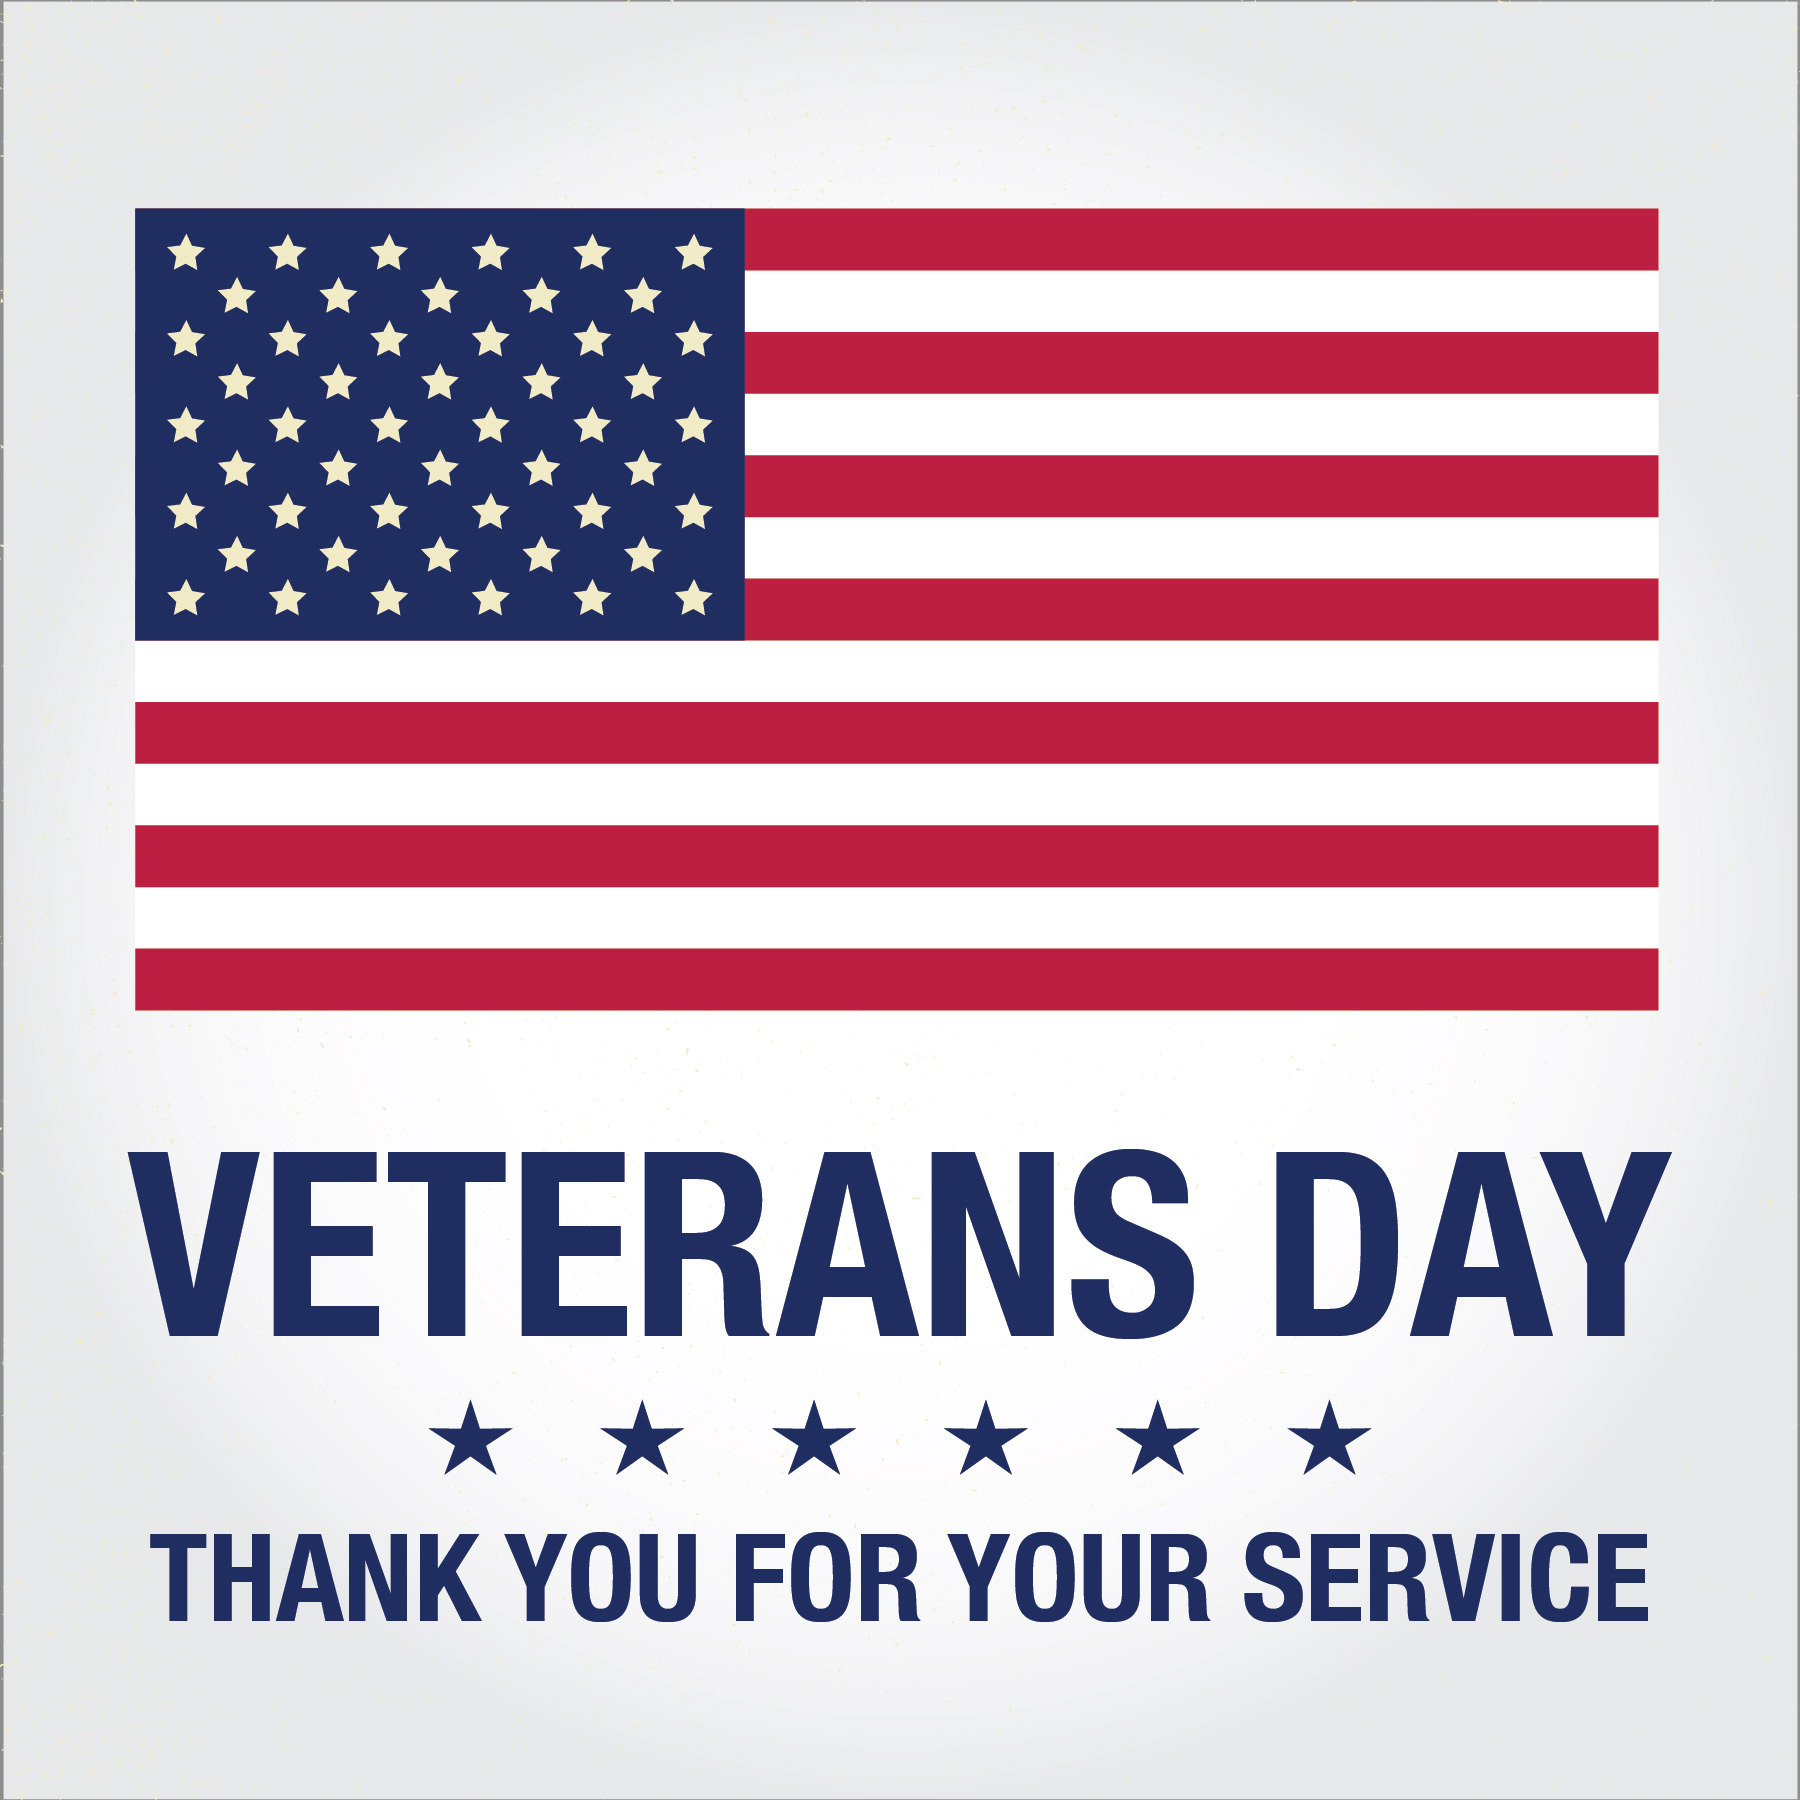 Veterans Day Thank You For Your Service Card